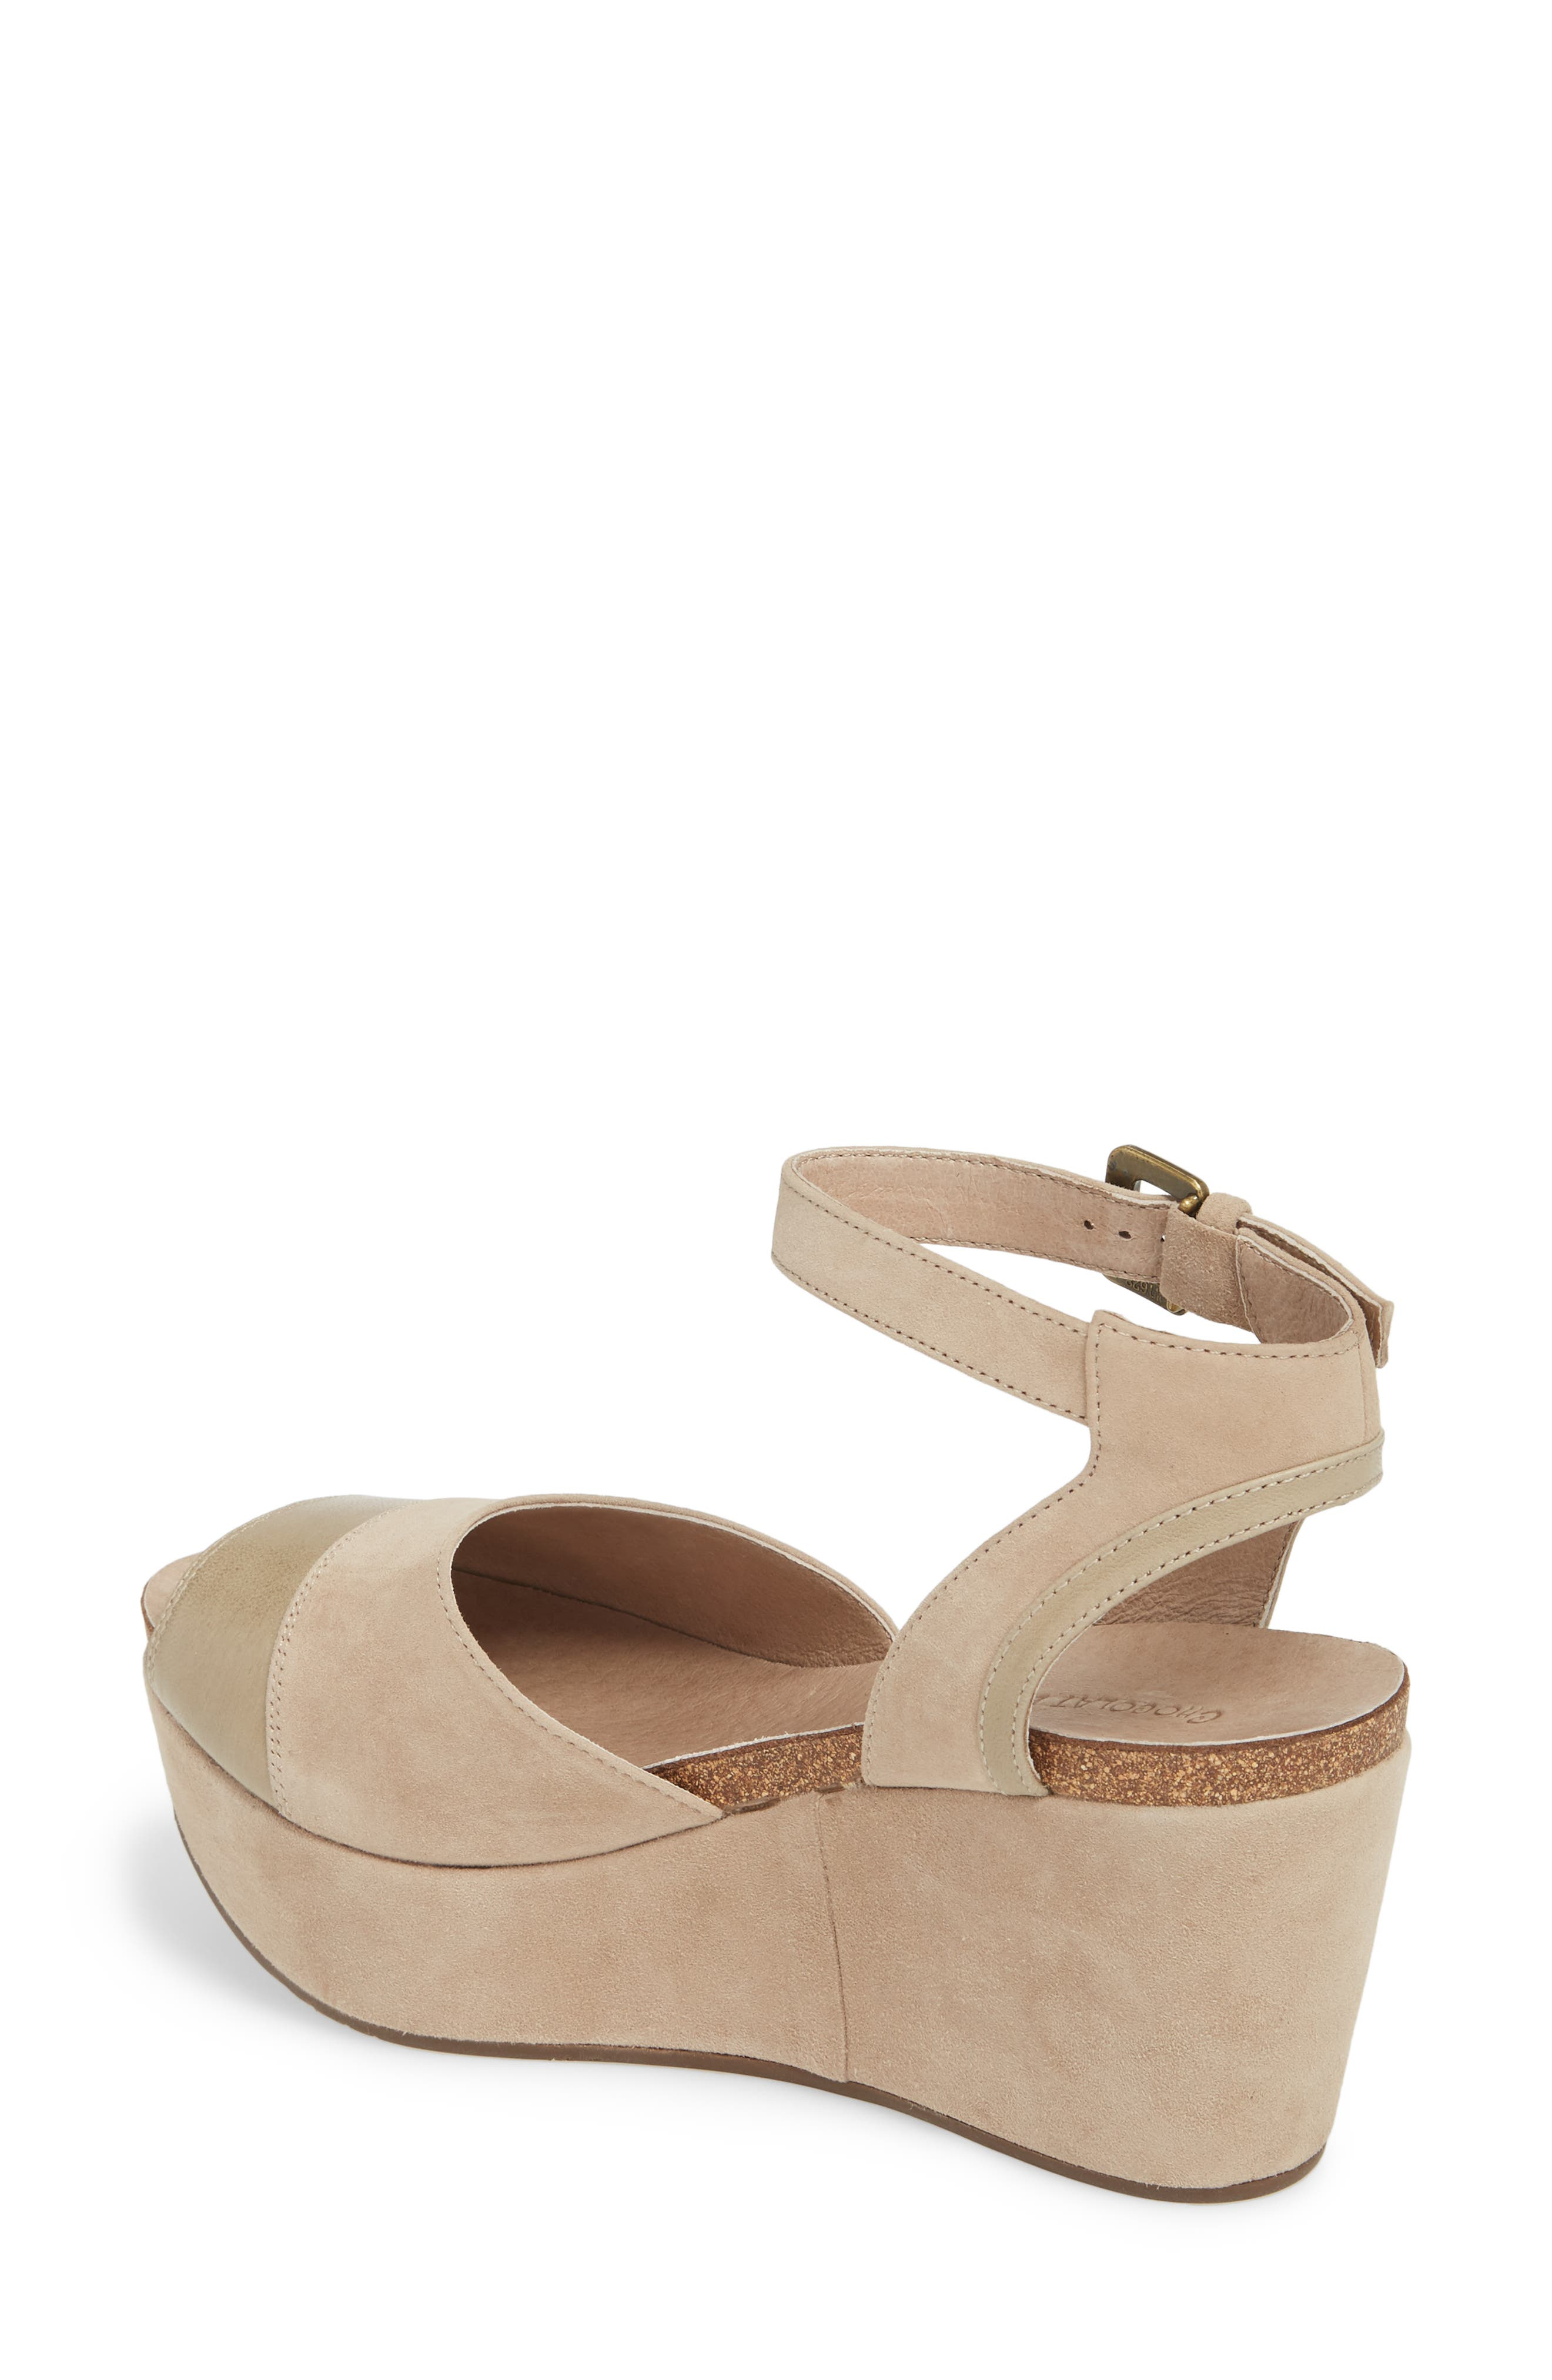 Chocolate Blu Welby Ankle Strap Wedge Sandal,                             Alternate thumbnail 2, color,                             TAUPE SUEDE